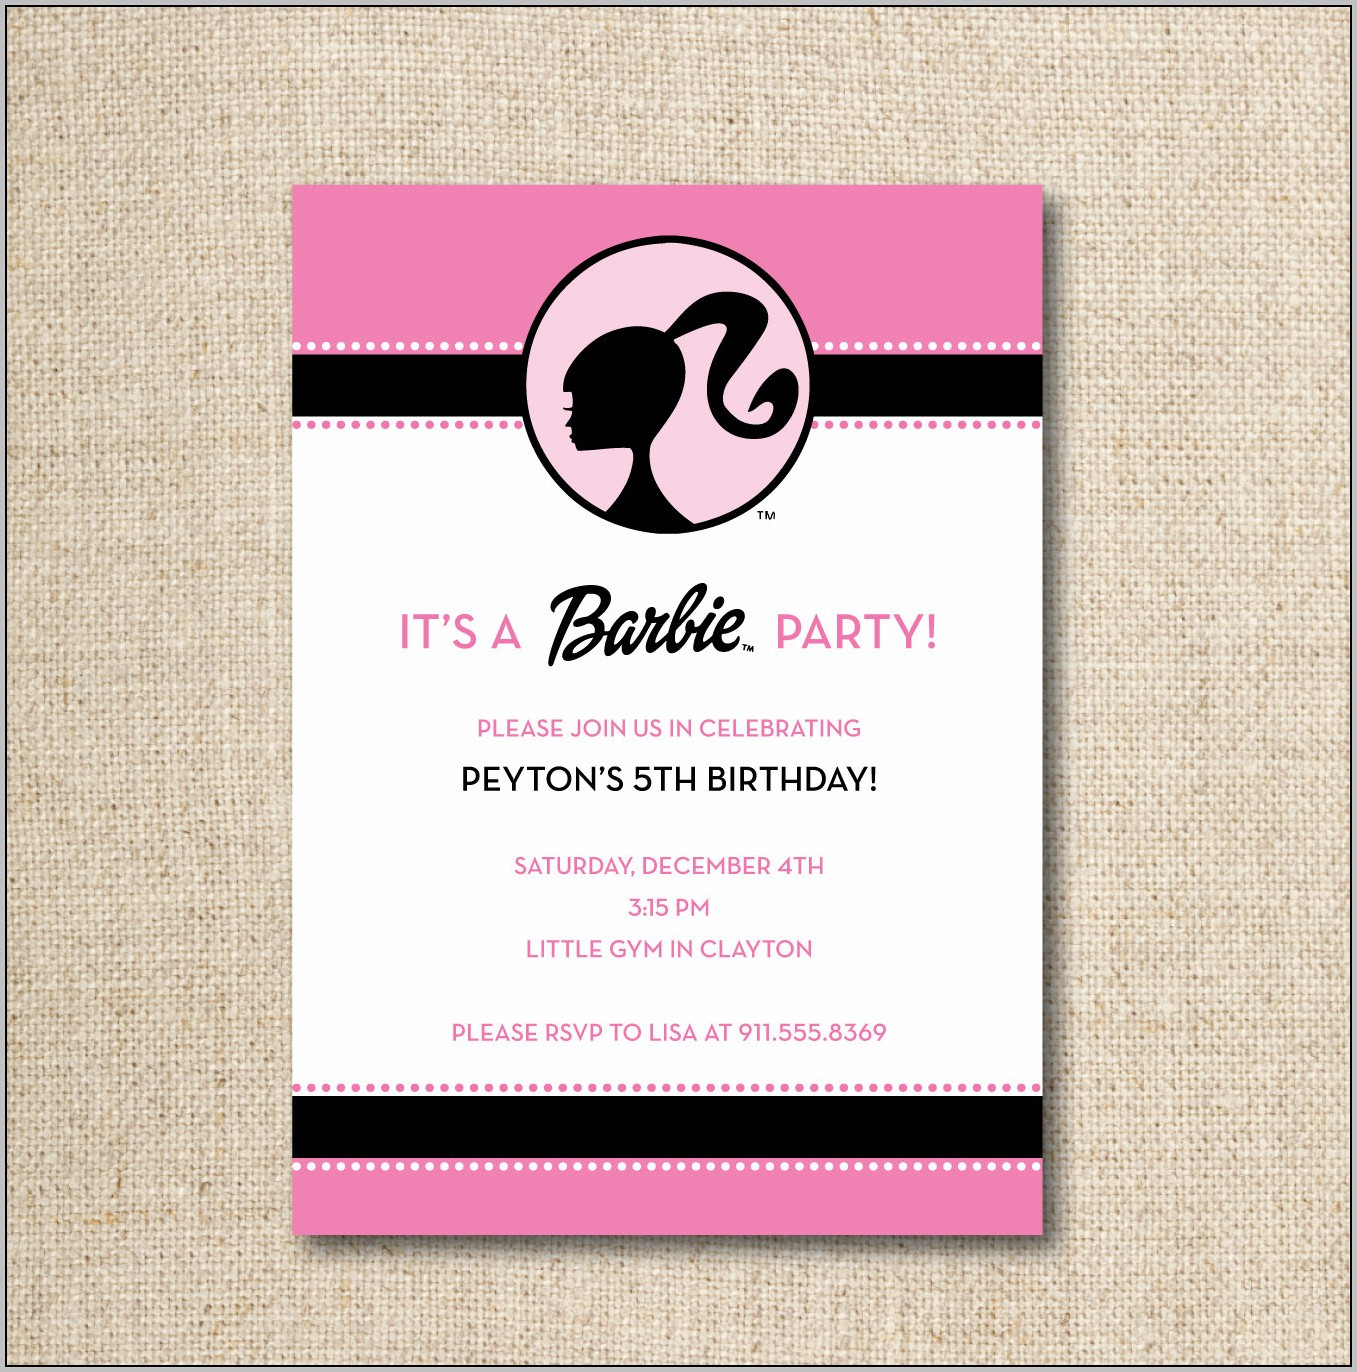 Birthday Invitation Barbie Template